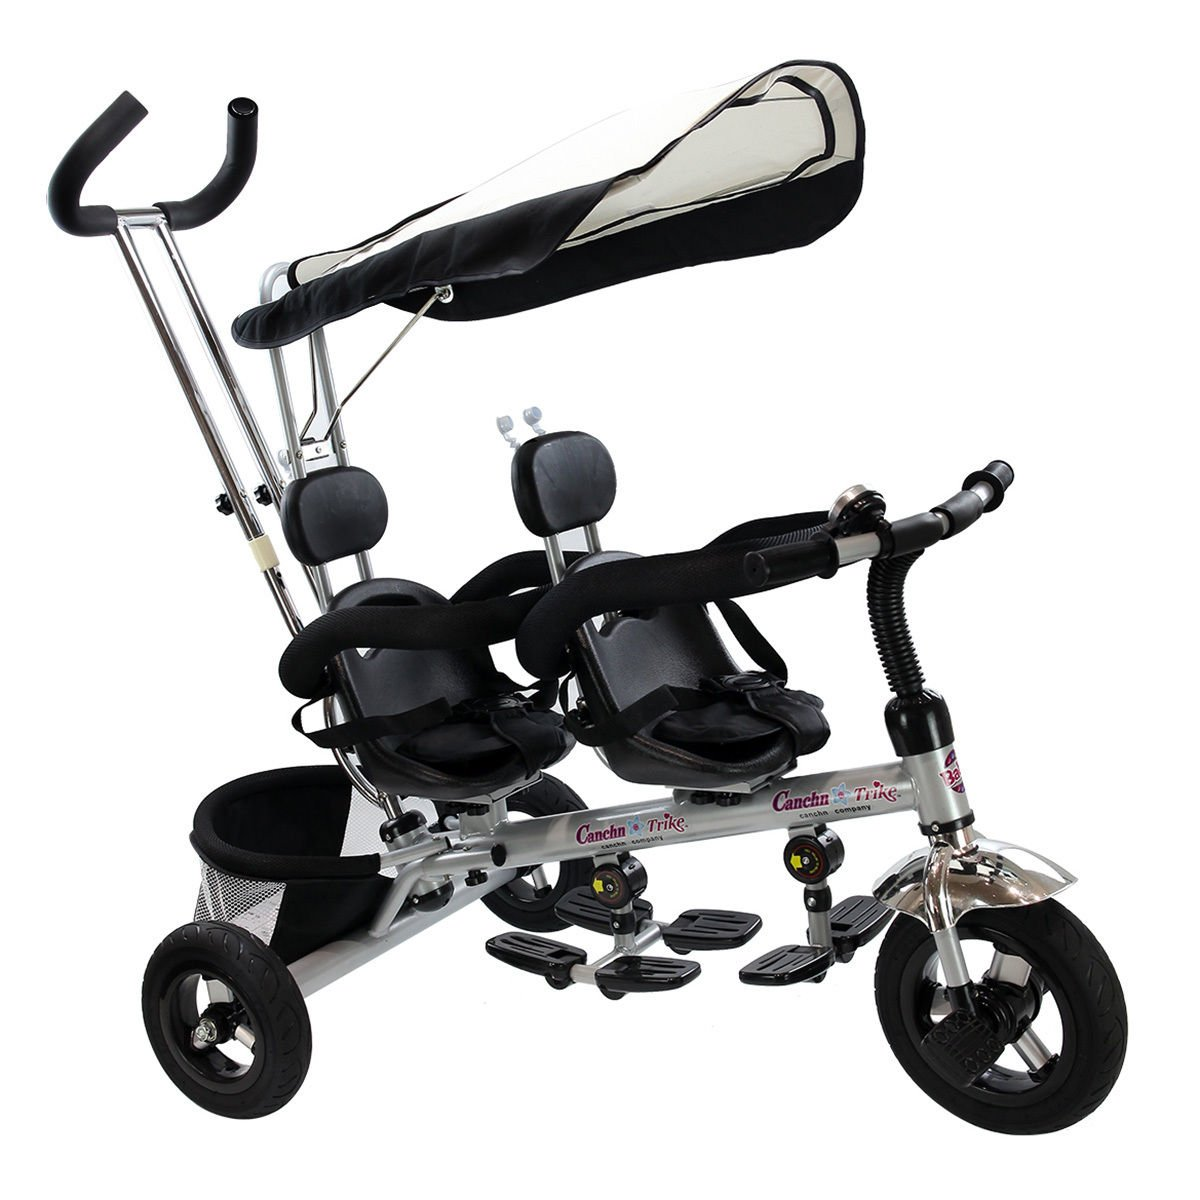 Costzon 4 In 1 Dual Twins Kids Trike Baby Toddler Tricycle Safety Double Rotatable Seat w/ Basket, Black by Costzon (Image #1)